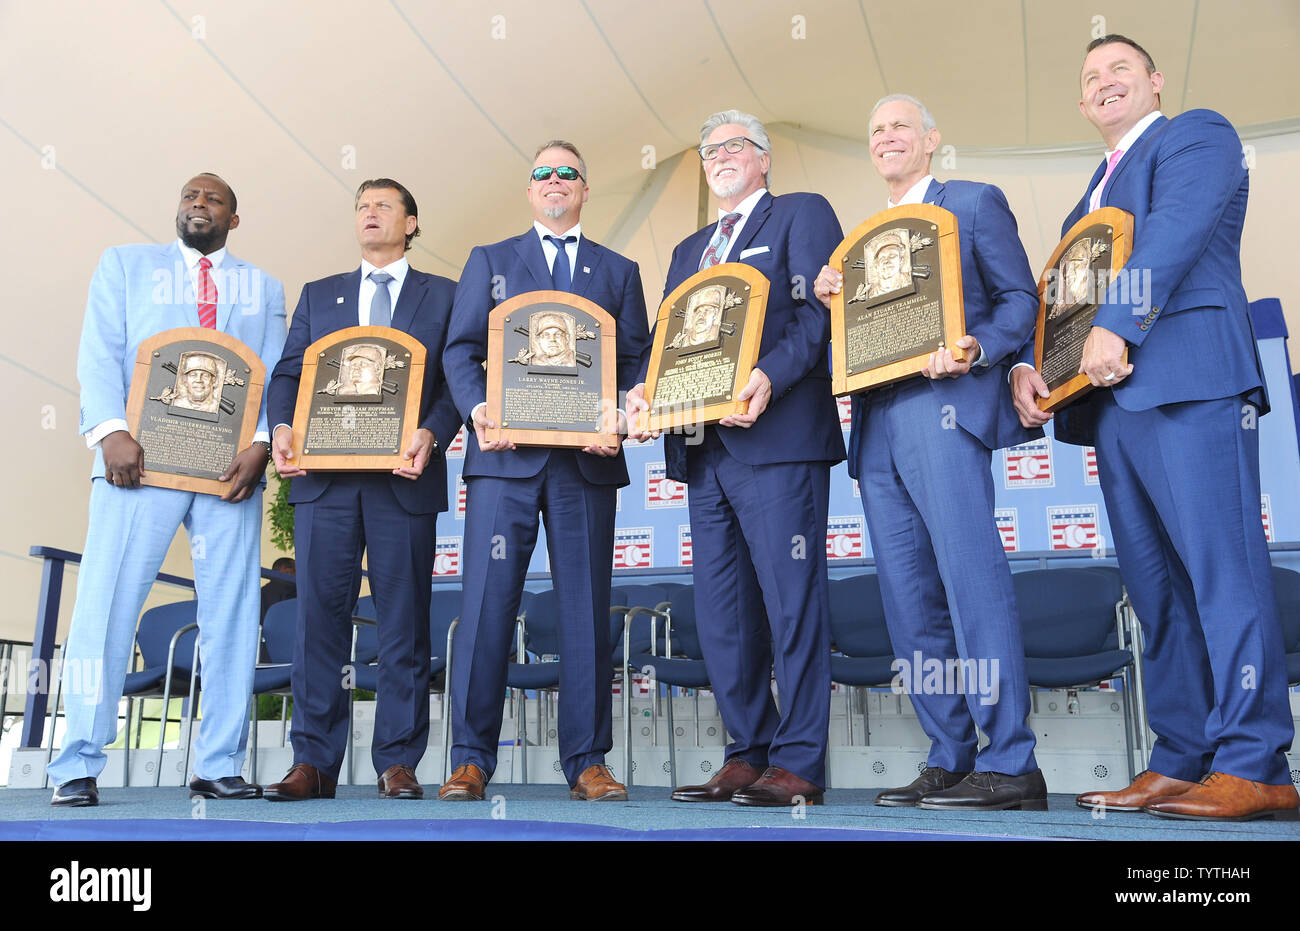 Vladmir Guerrero, Trevor Hoffman, Chipper Jones, Jack Morris, Alan Trammell and Jim Thome on stage holding their induction plaques after delivering their Baseball Hall of Fame induction speech at the Clark Sports Center in Cooperstown, NY on July 29, 2018.  A record 60 Hall of Famers are scheduled to be in Central New York to honor Vladimir Guerrero, Trevor Hoffman, Chipper Jones, Jack Morris, Jim Thome and Alan Trammell at the National Baseball Hall of Fame and Museum during Hall of Fame Weekend on July 27-30.     Photo by George Napolitano/UPI - Stock Image